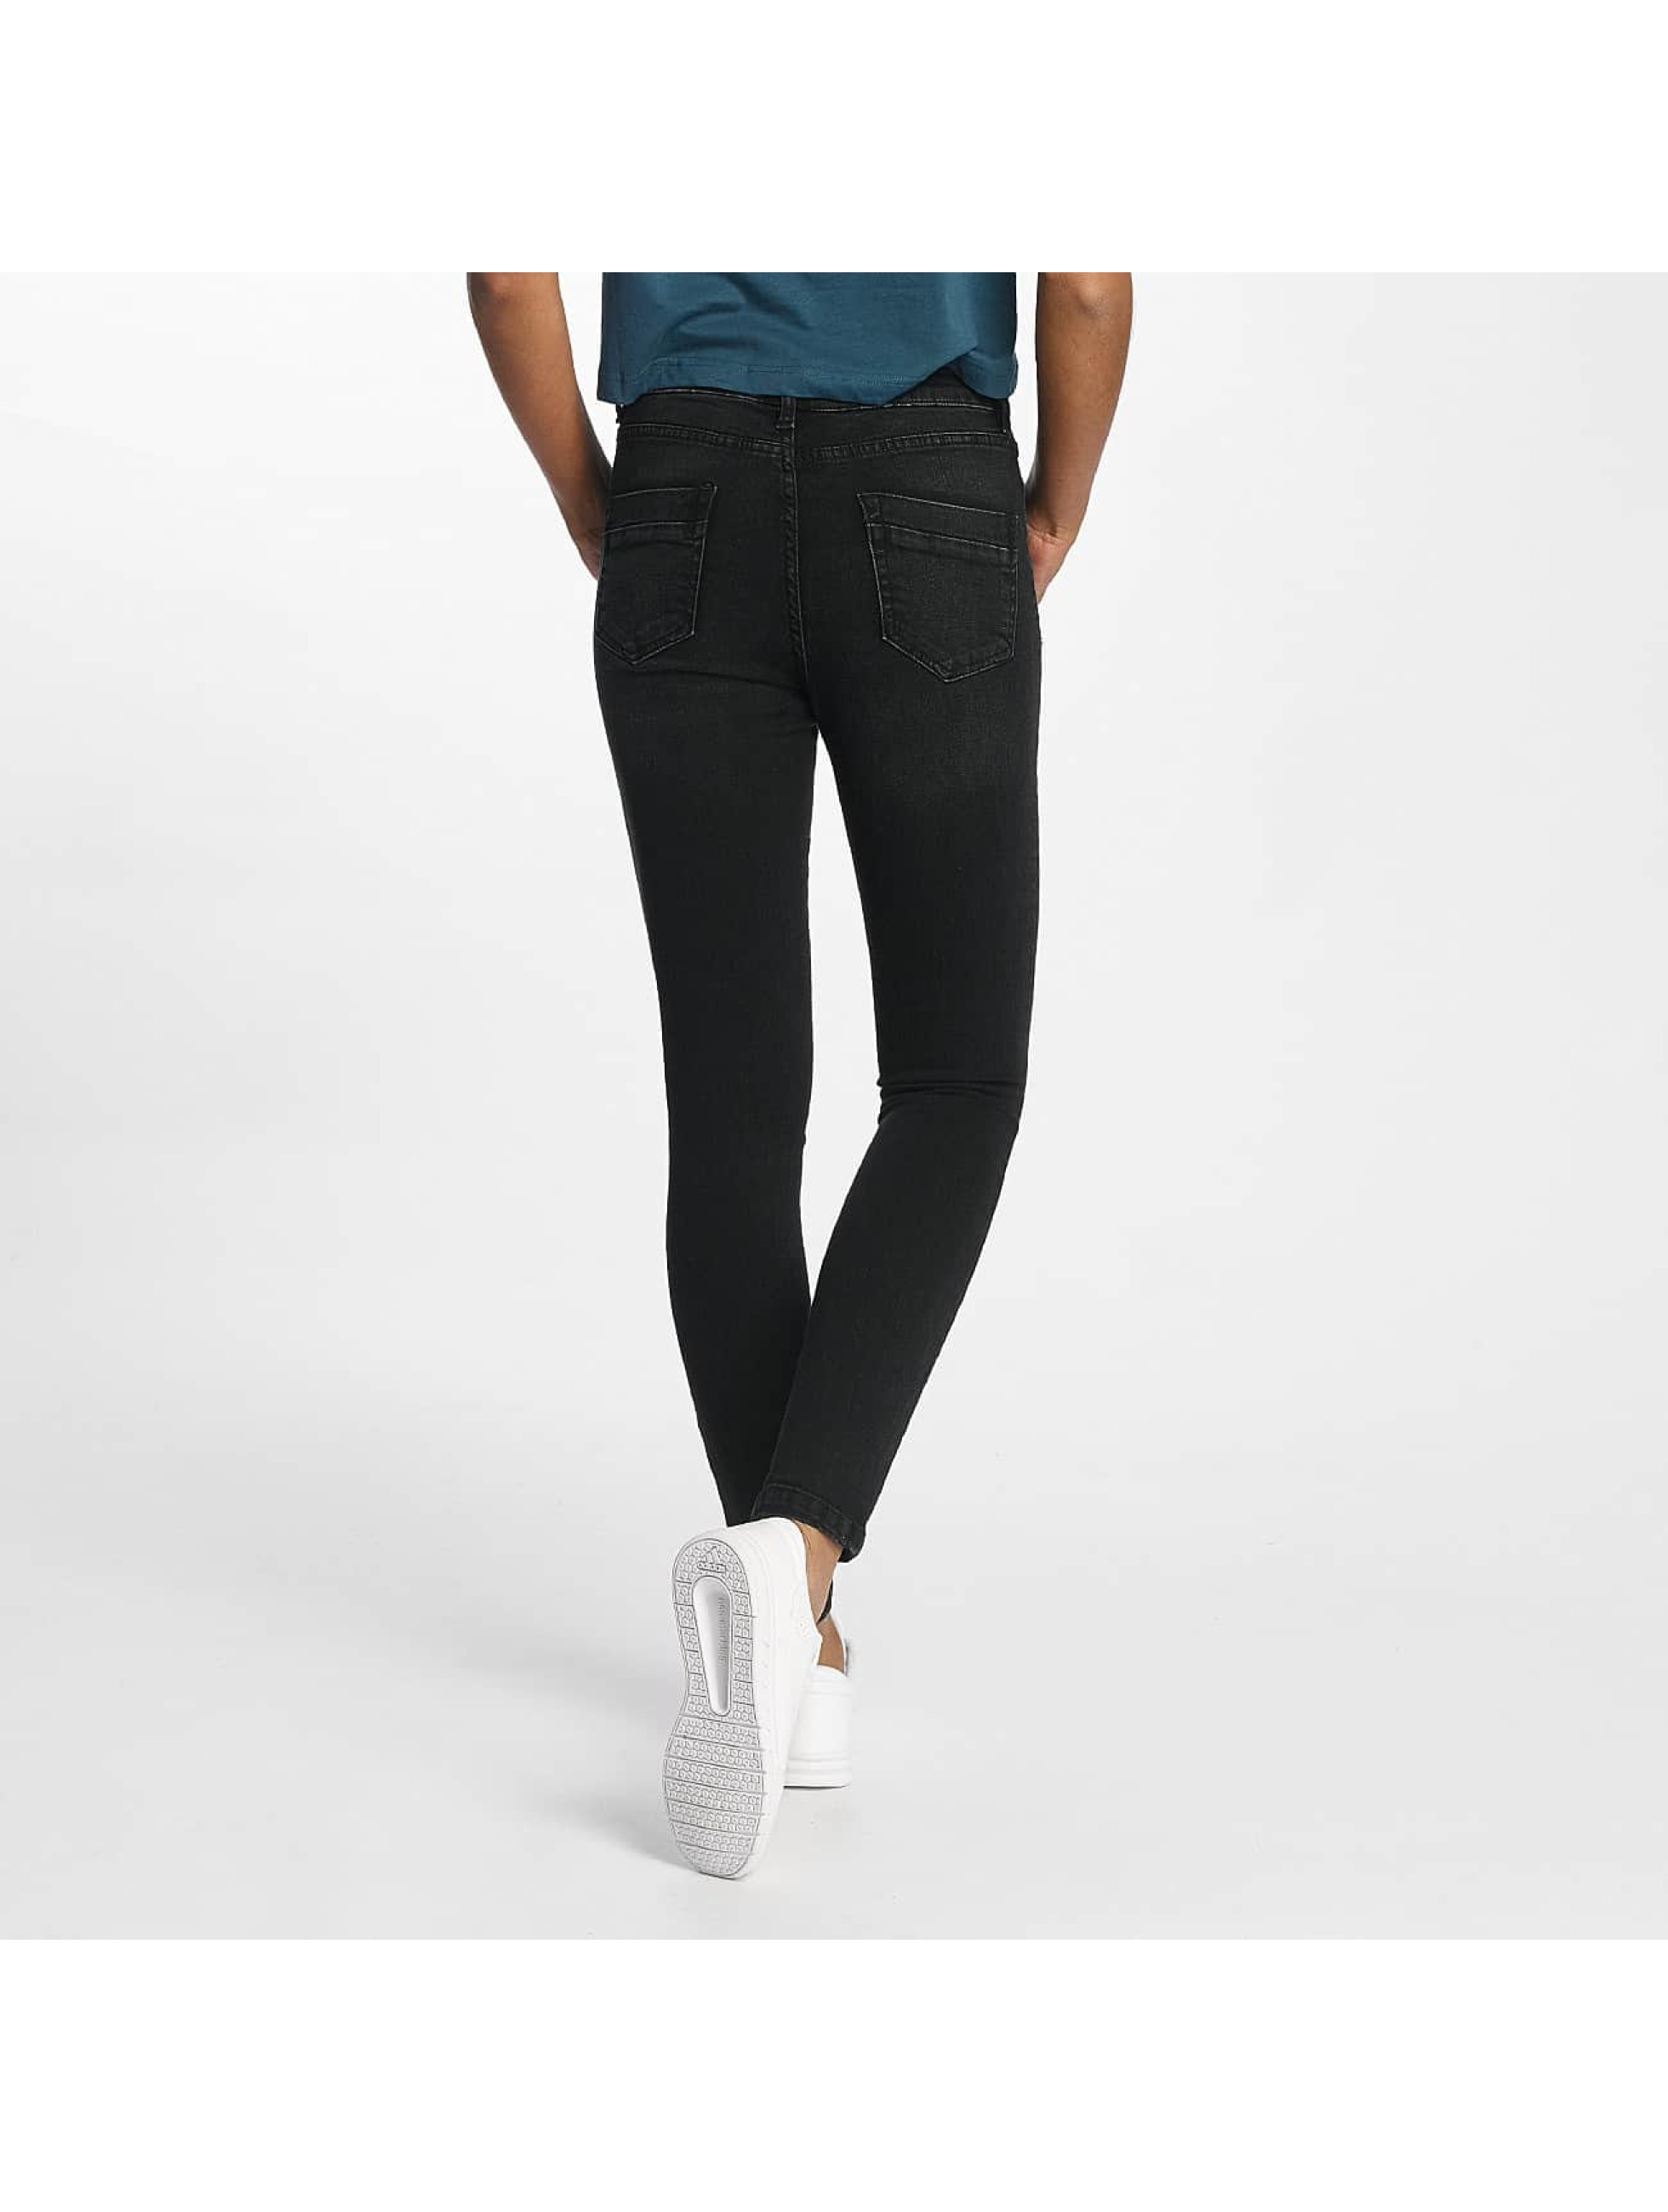 Urban Classics Jeans slim fit Skinny Denim nero